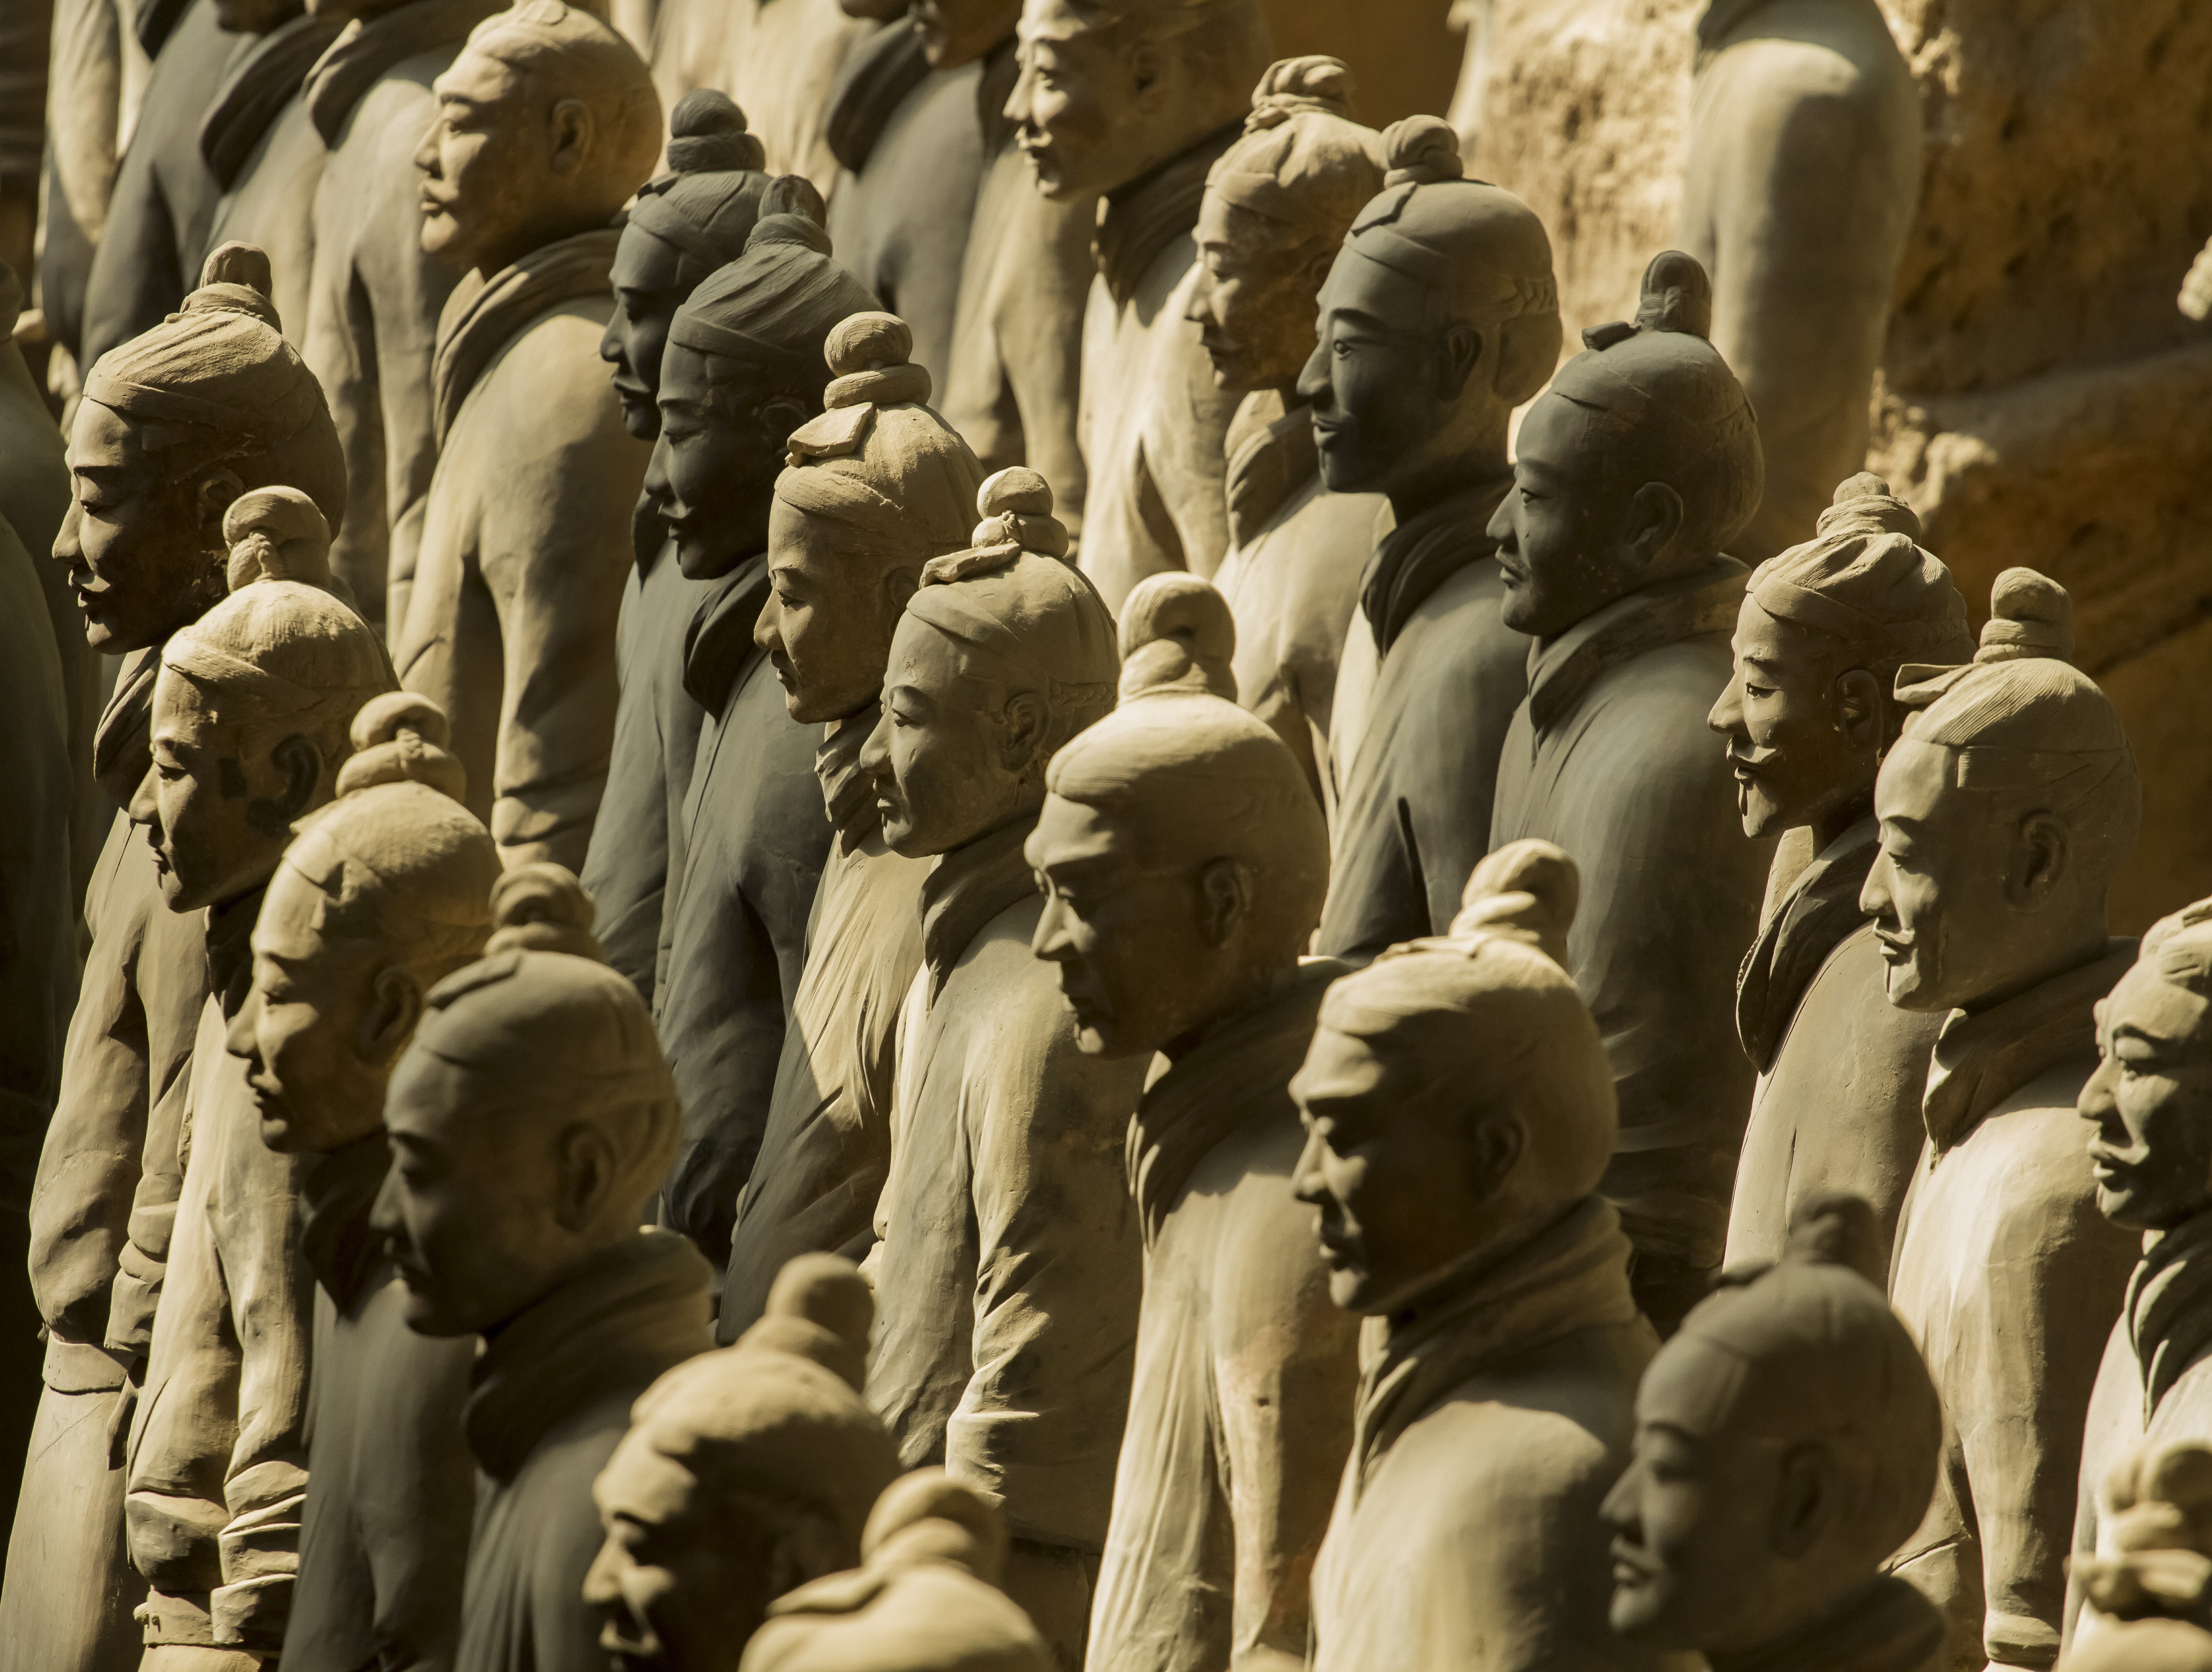 The two thousand plus years of Chinese history since China's unification by the first Qin emperor has been carelessly characterised by most modern people (even Chinese) as being feudalistic, backward, ignorant and decadent. (iStock)